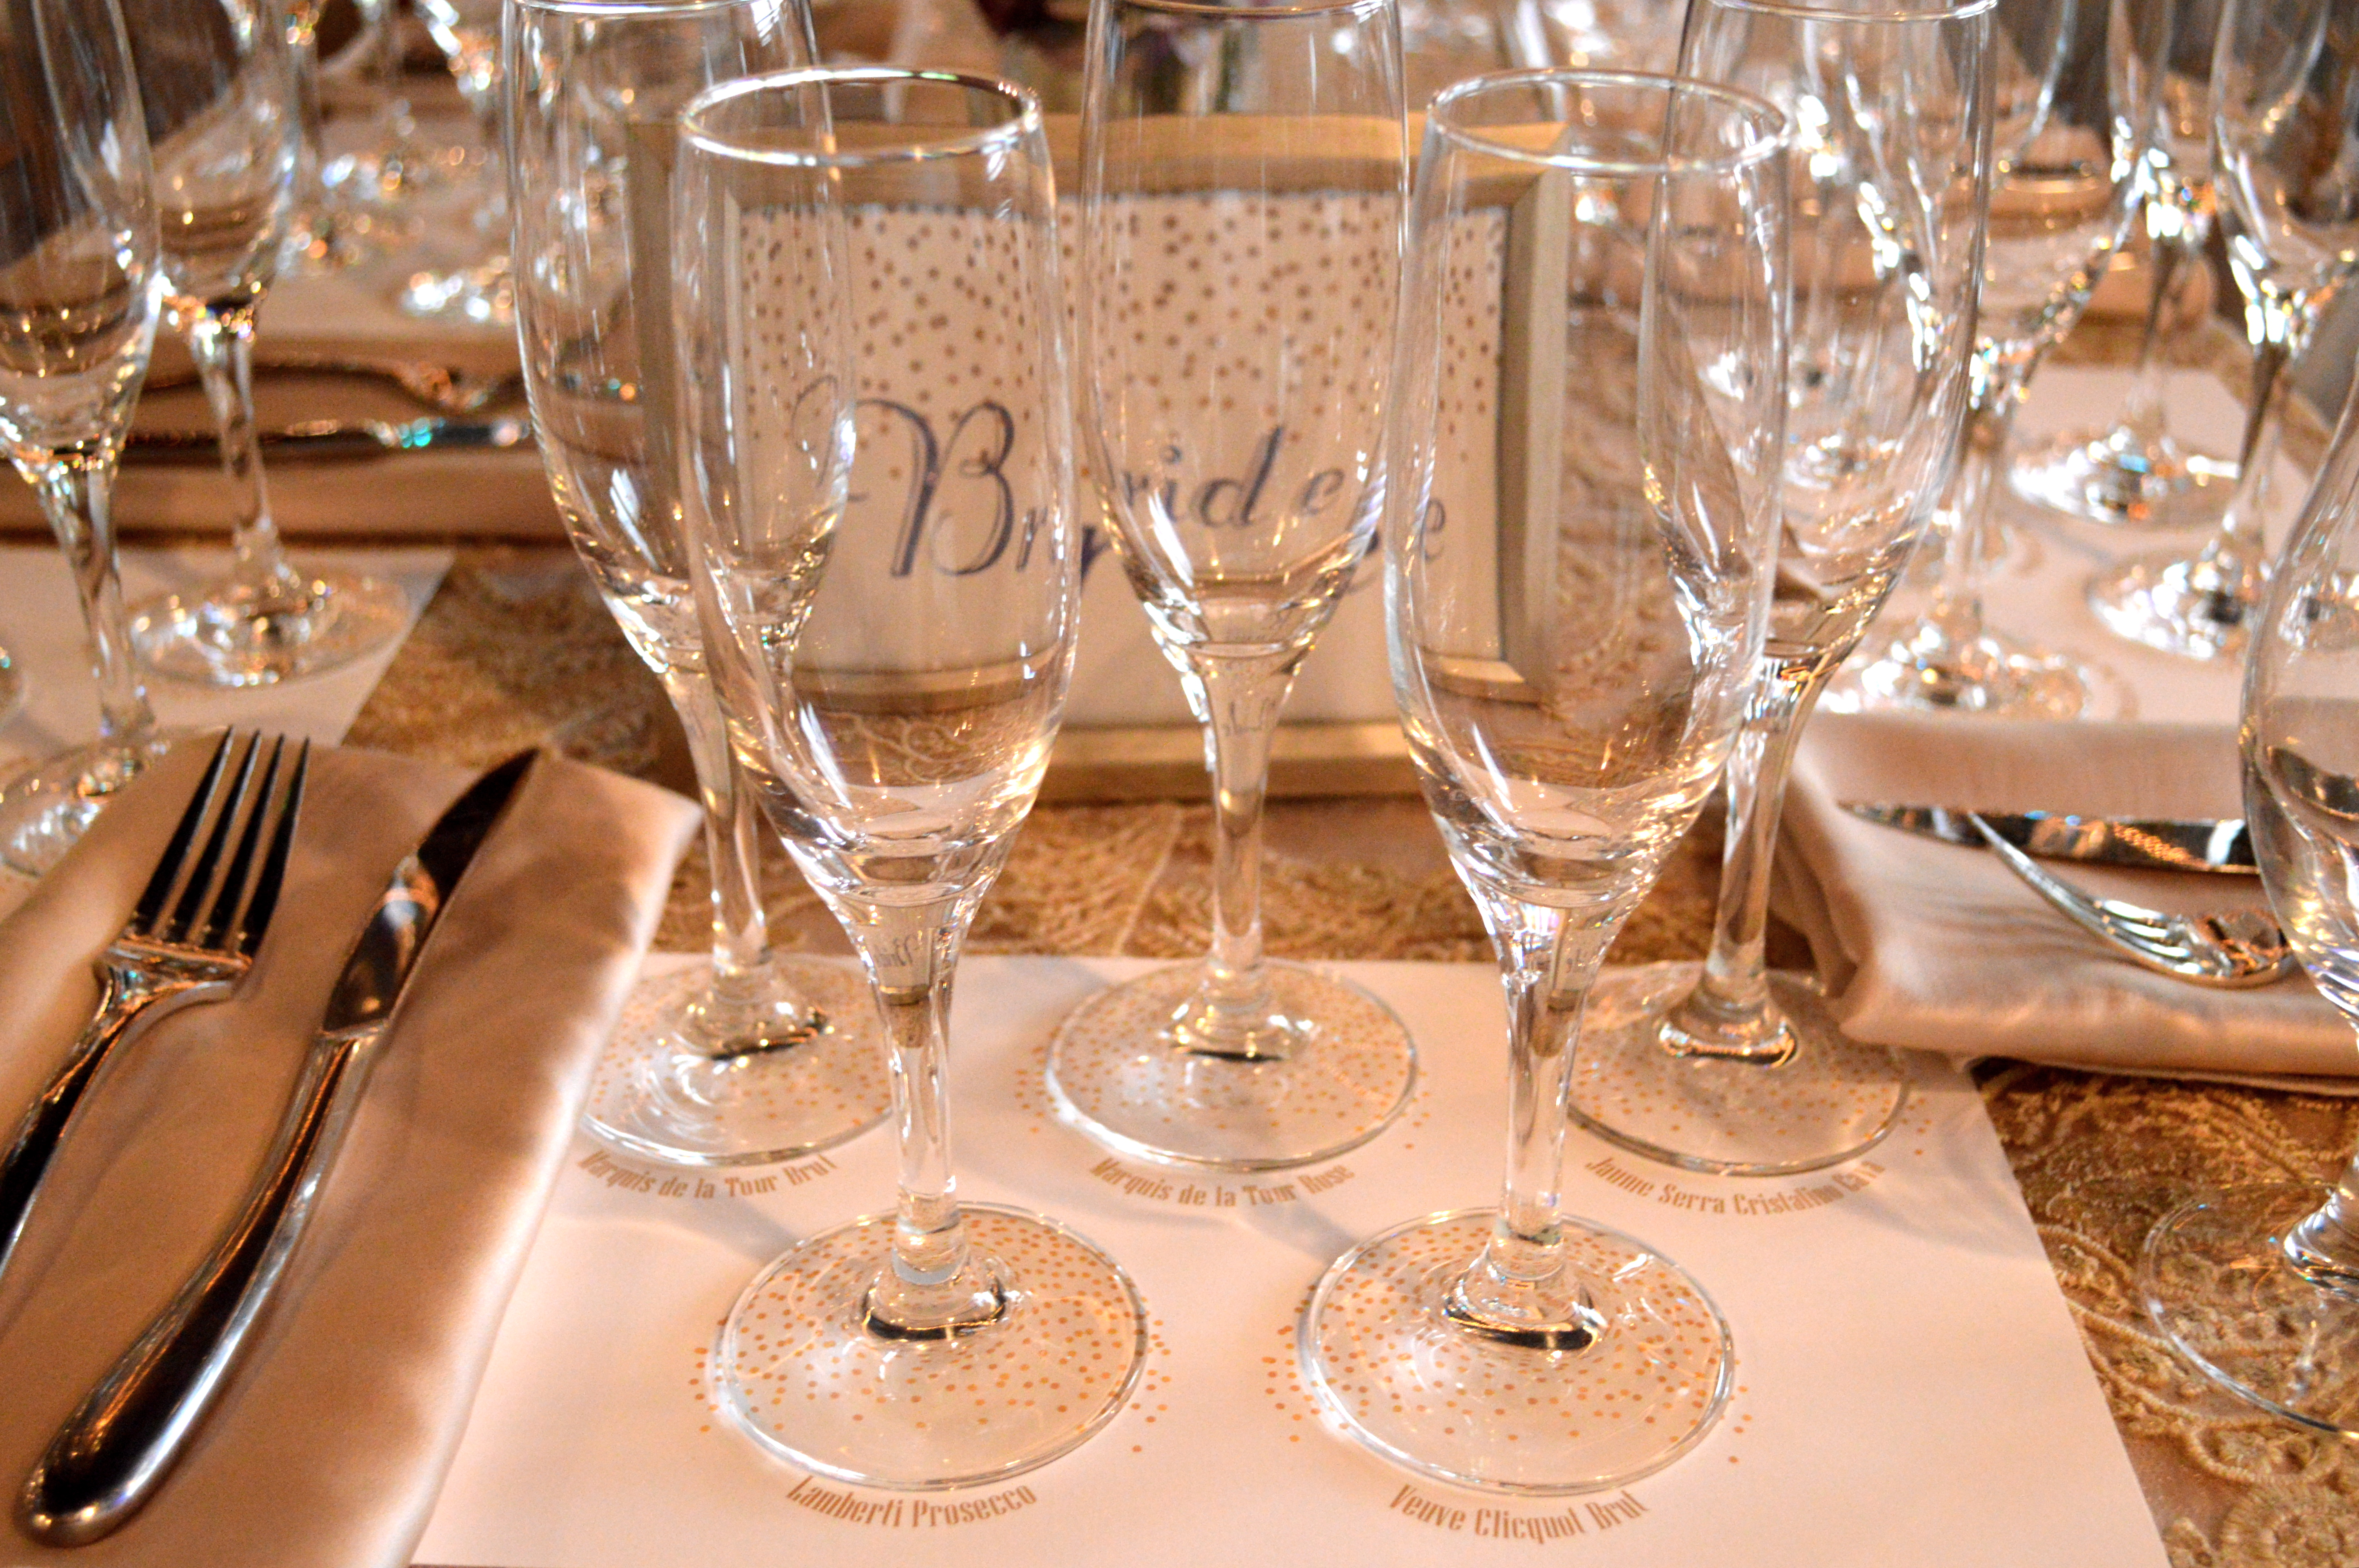 girls day out indulgent bridal shower theme with champagne the event group pittsburgh